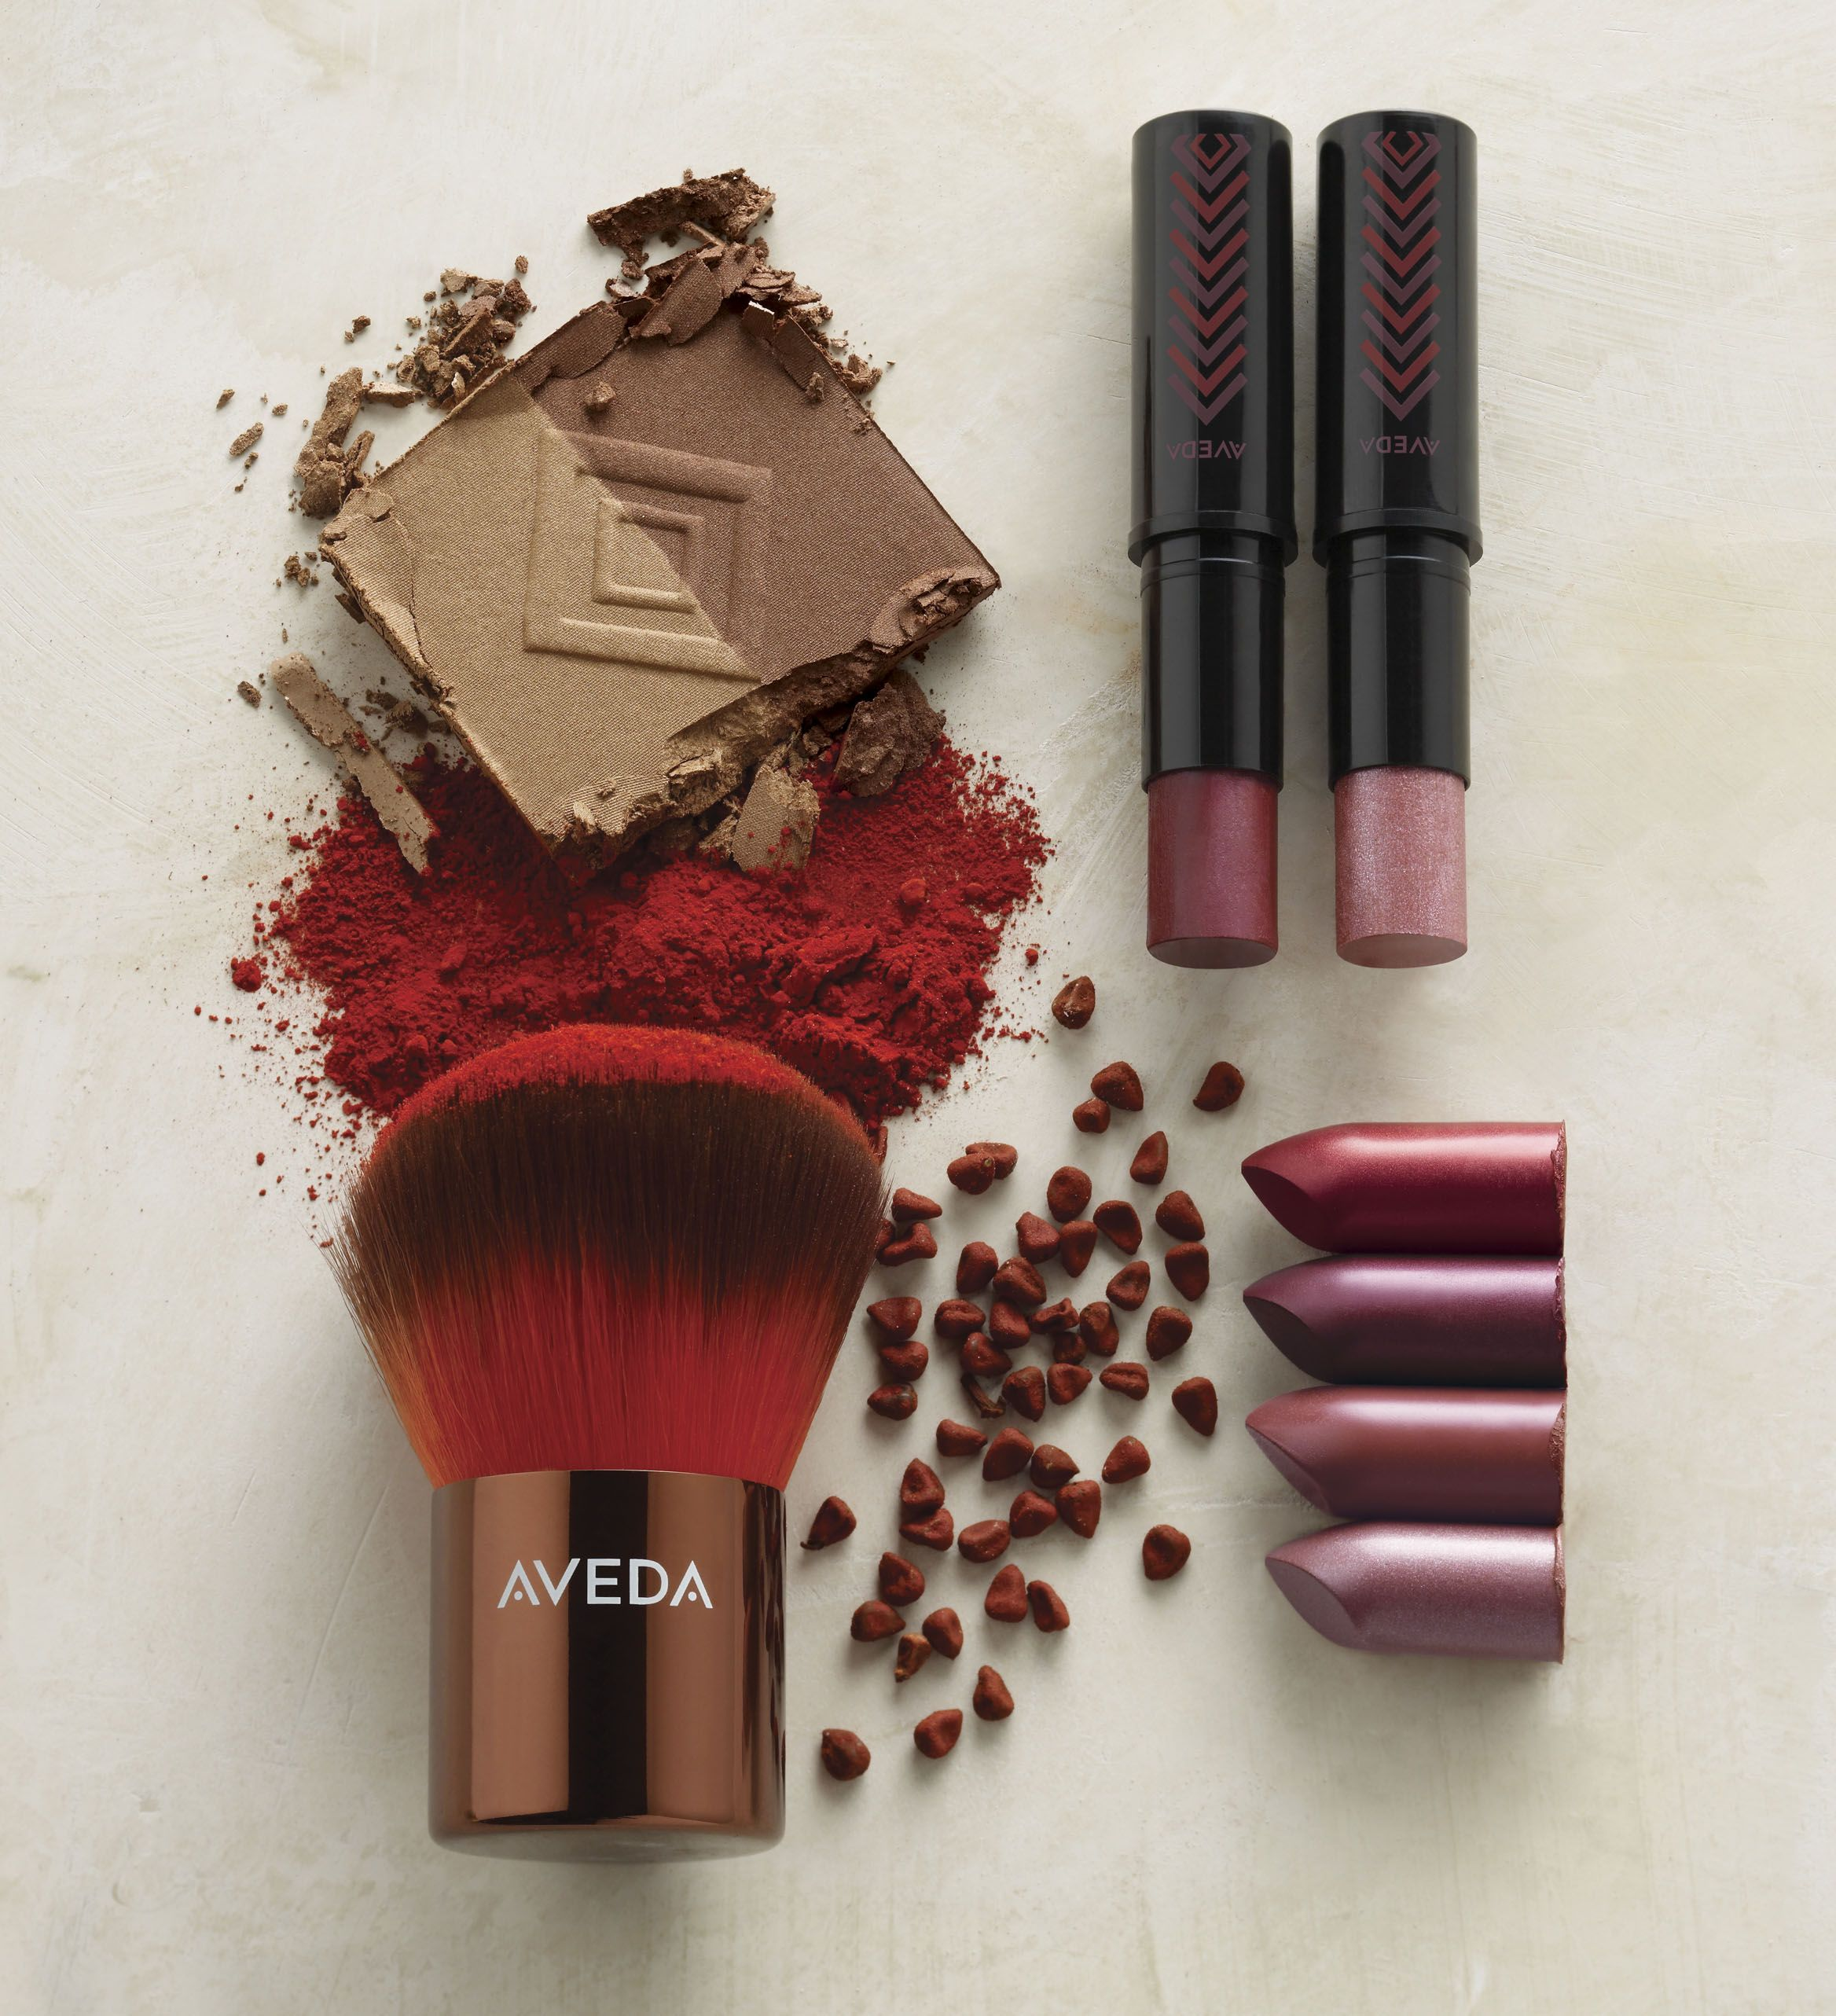 The Spa offers a variety of Aveda cosmetics.